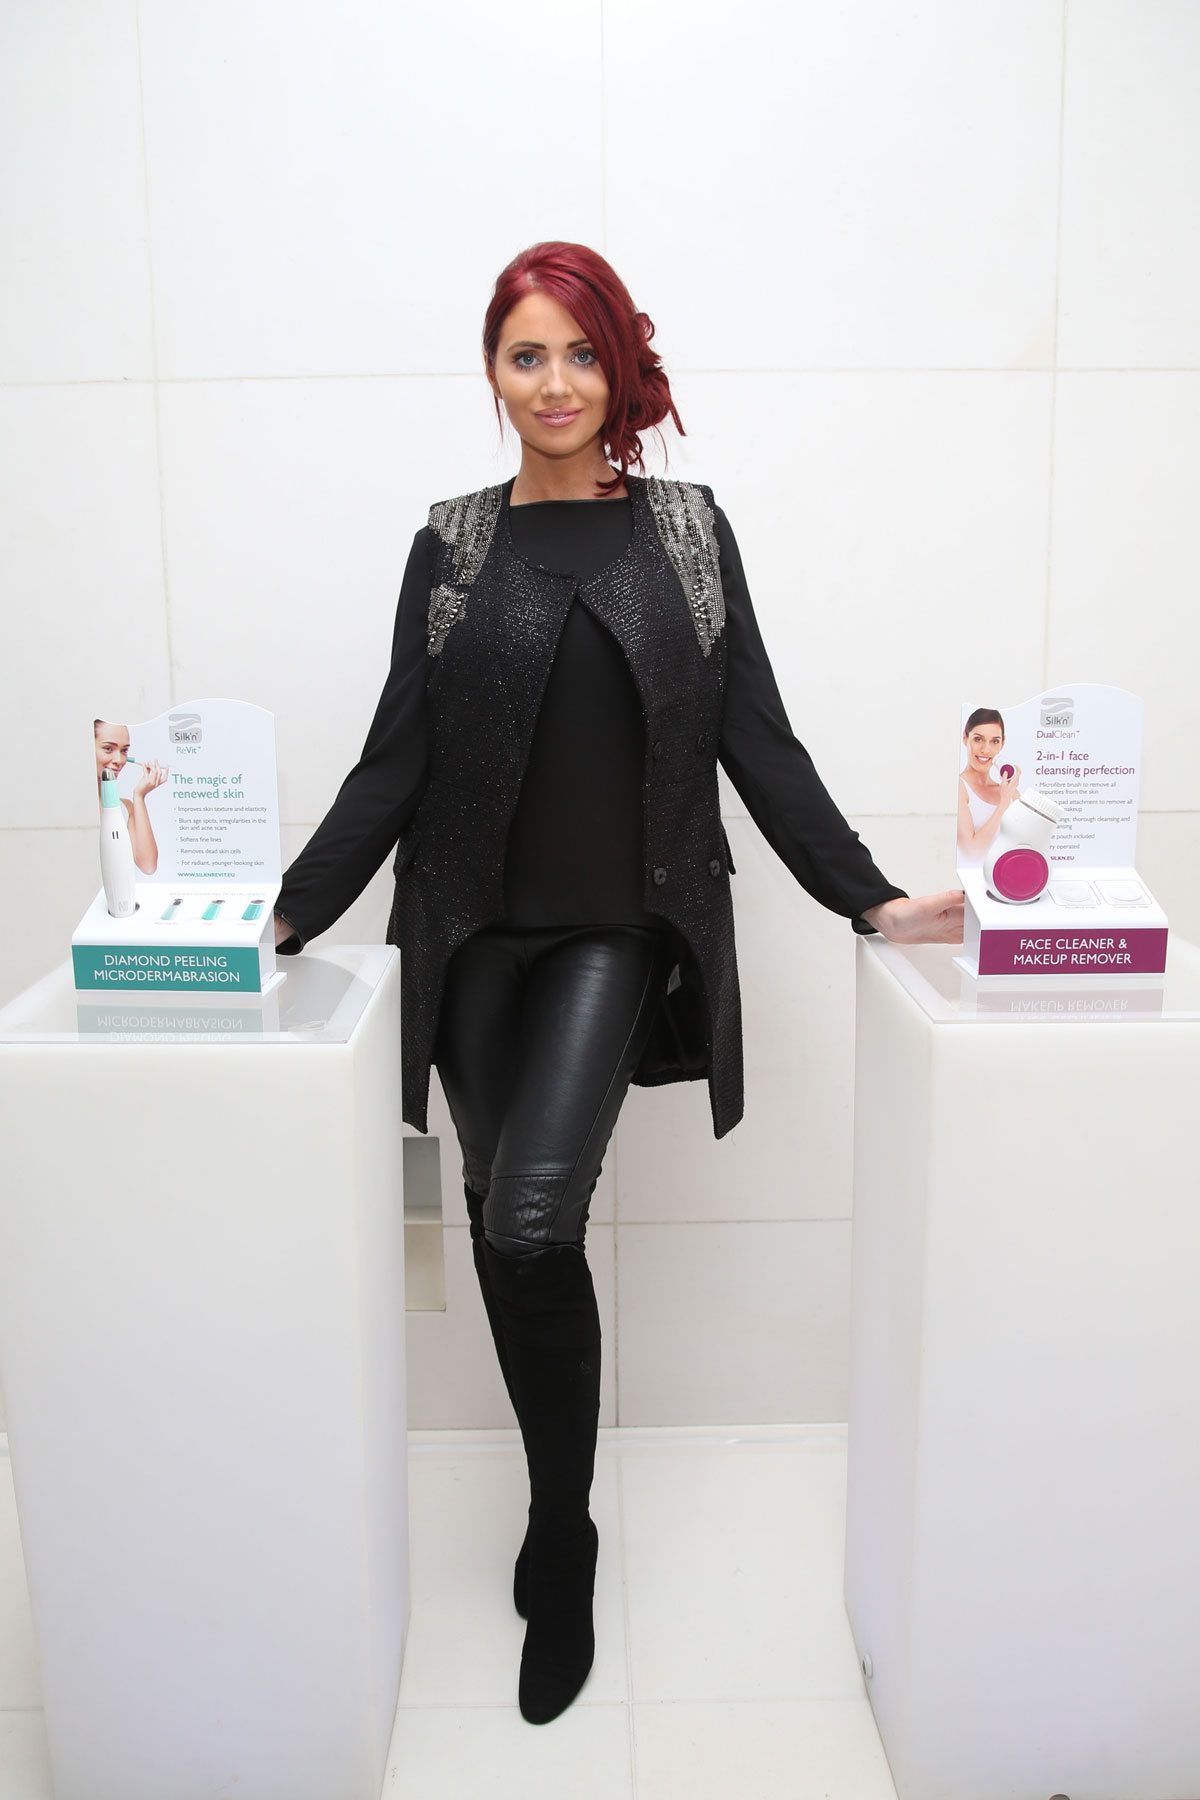 Amy Childs nudes (59 foto and video), Pussy, Fappening, Twitter, legs 2019